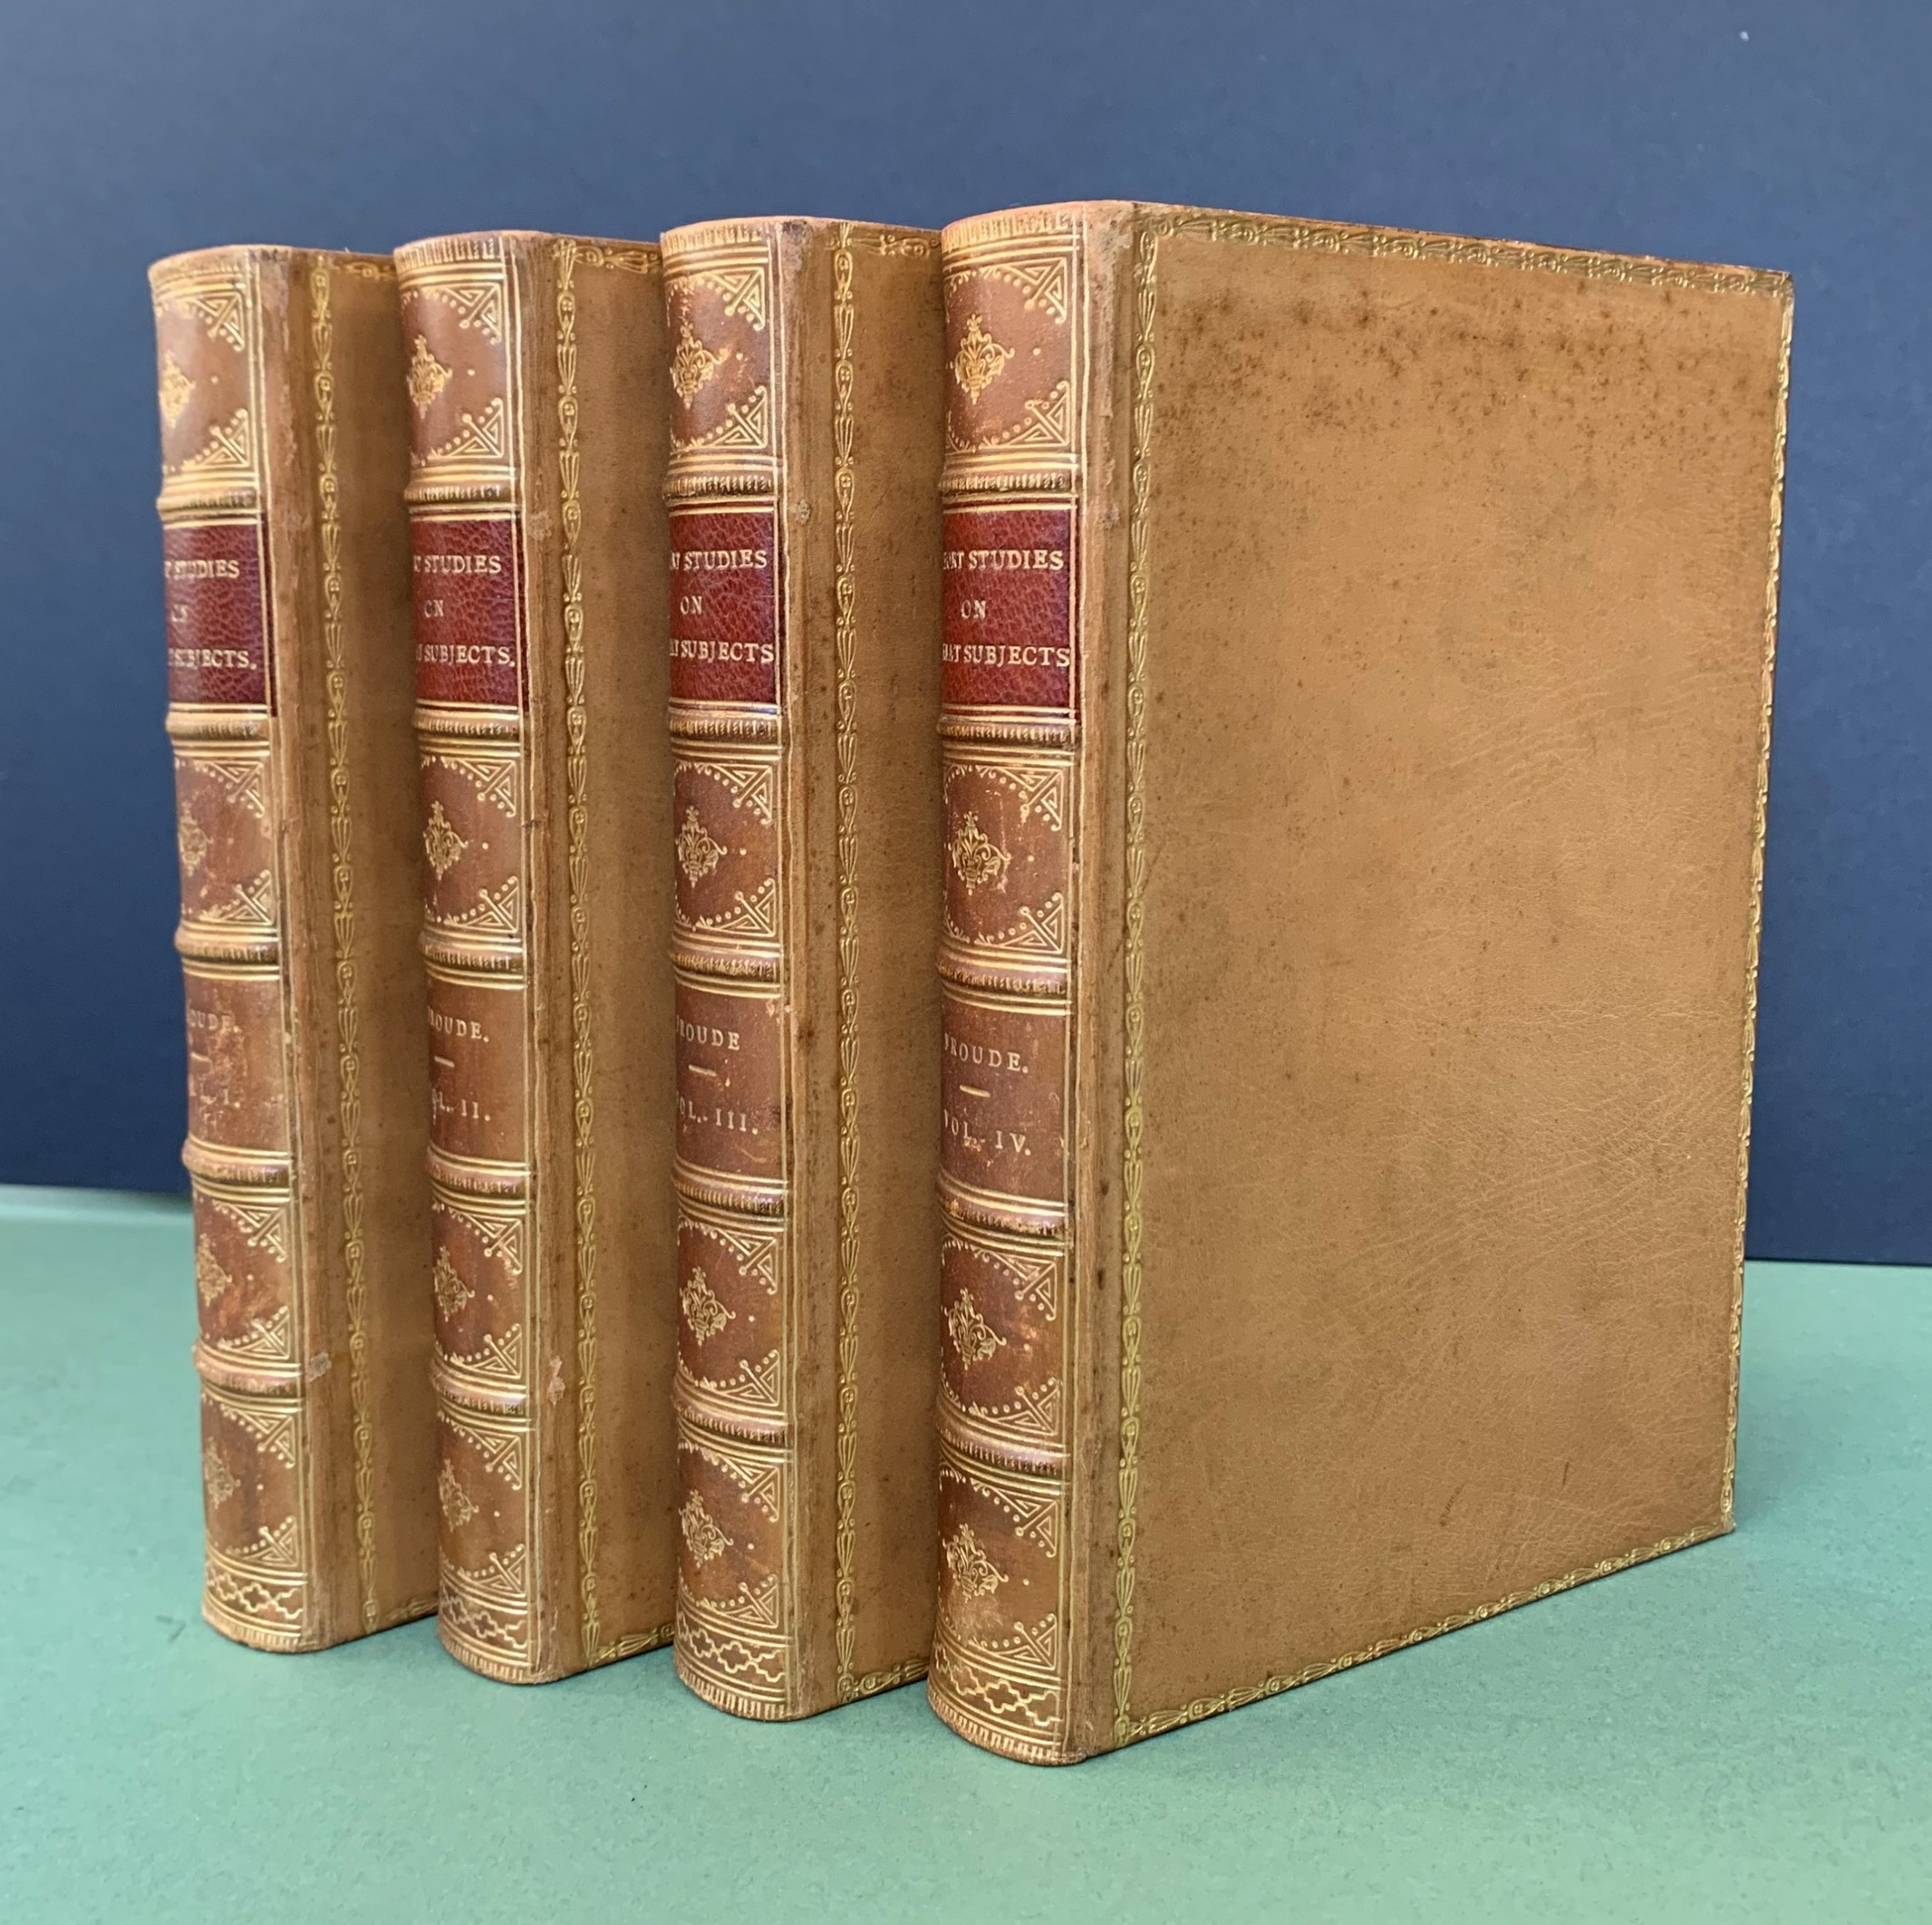 short studies on great subjects by froude complete in 4 books dated 18945